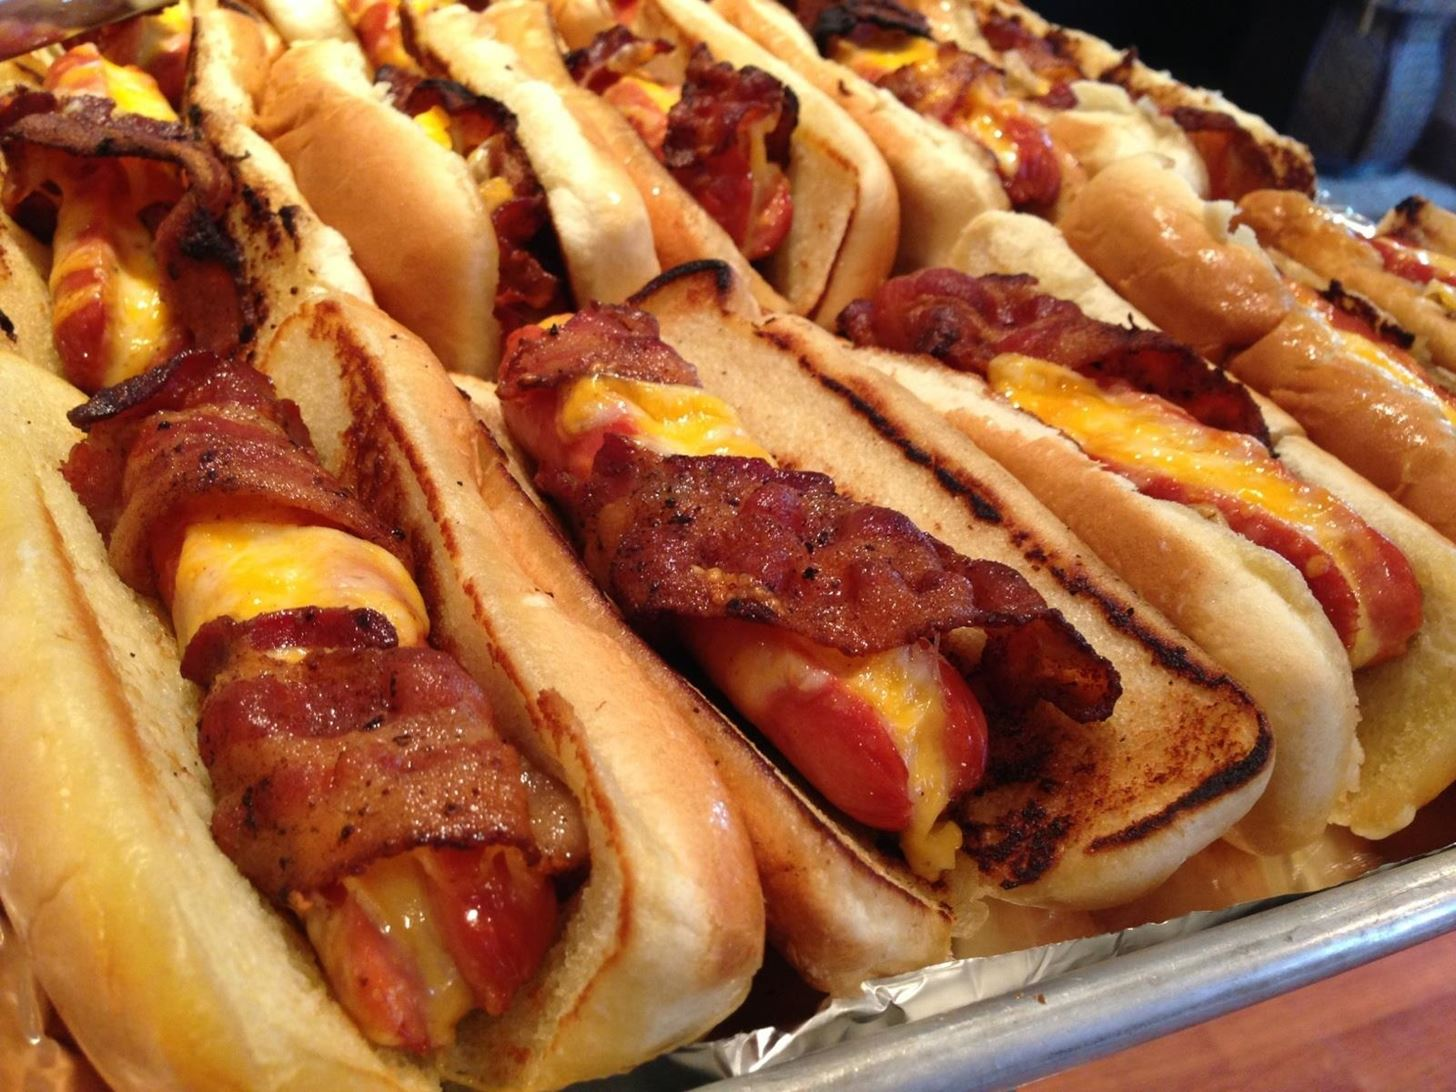 School Lunch Ideas furthermore Carls Jr And Hardees Launch 5 Dollar All Star  bo Meals moreover Lays Flamin' Hot Flavored Potato Chips also 1433 additionally Cream Of Wheat Original Instant Hot Cereal 12 Packets. on pillsbury corn dogs